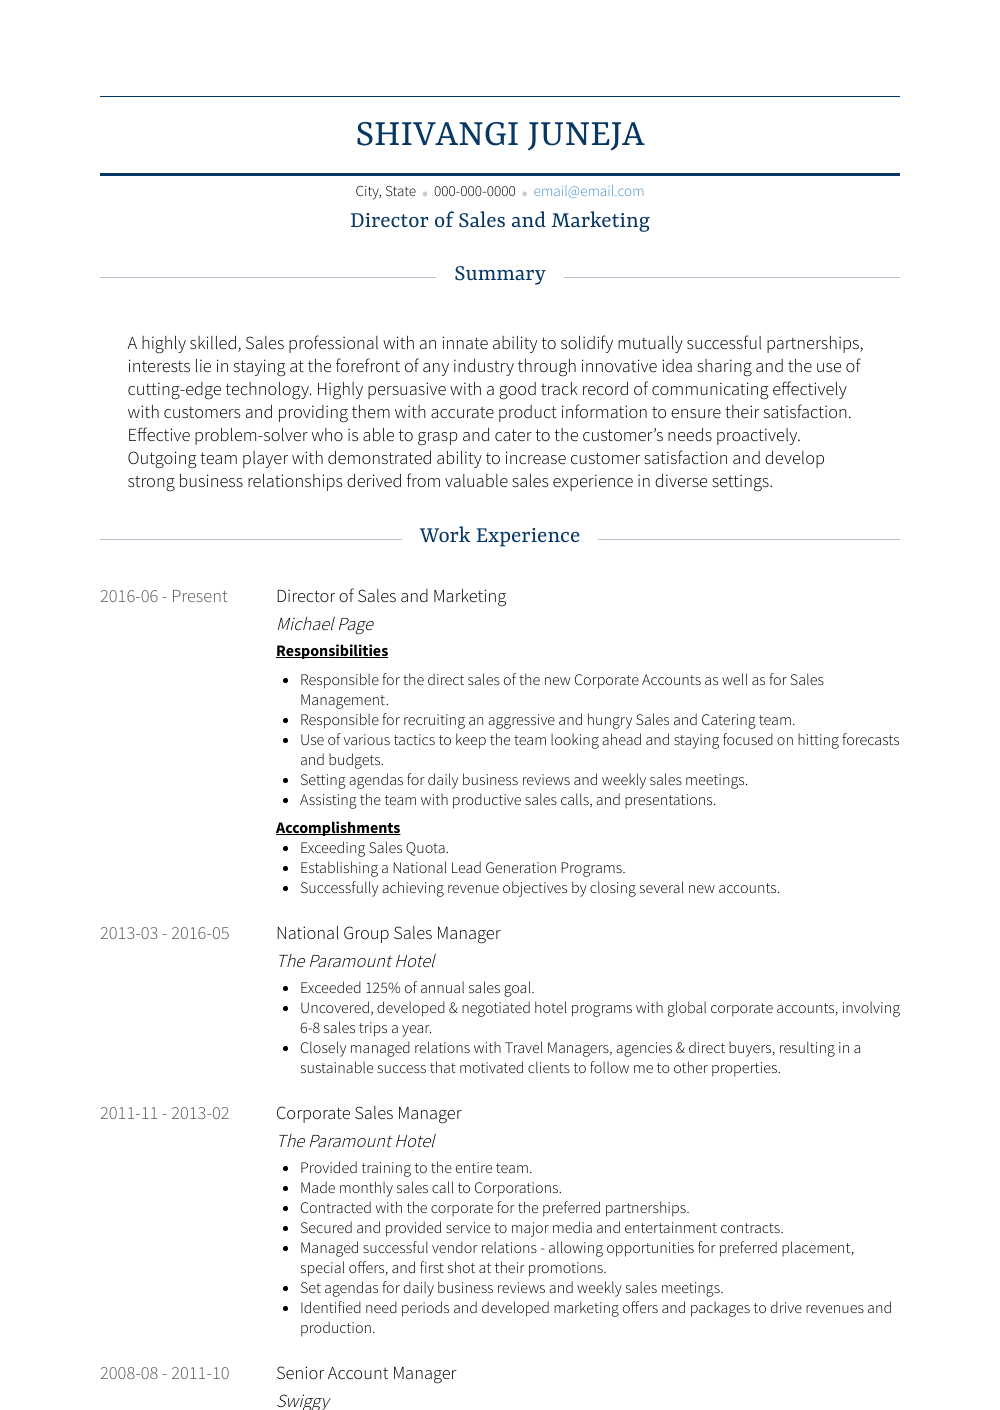 Director of Sales and Marketing Resume Sample and Template